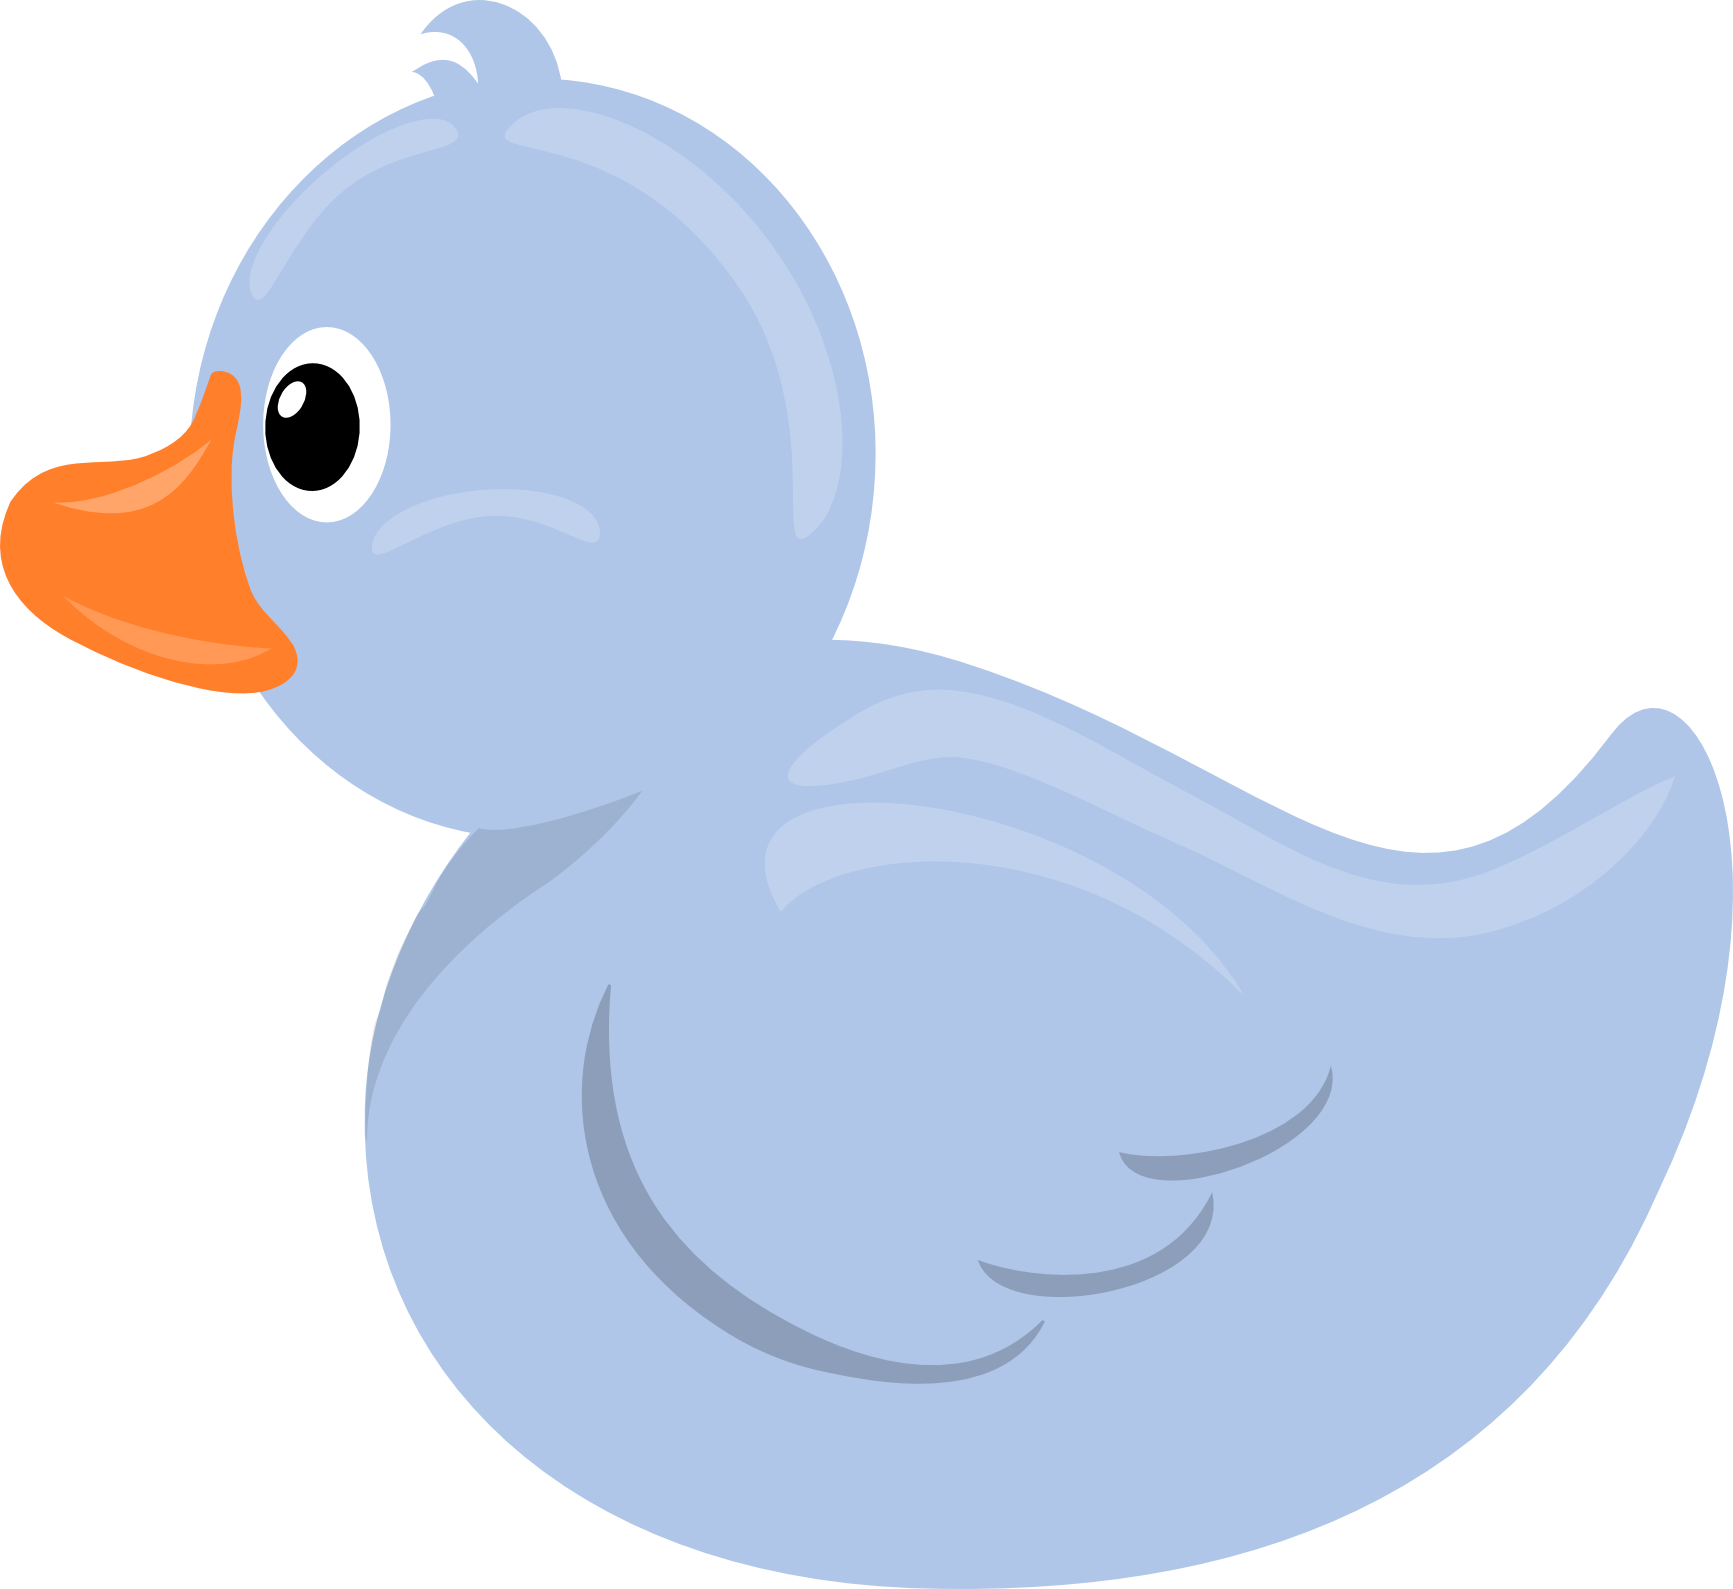 Rubber Duck Clipart   Free download best Rubber Duck Clipart on ...